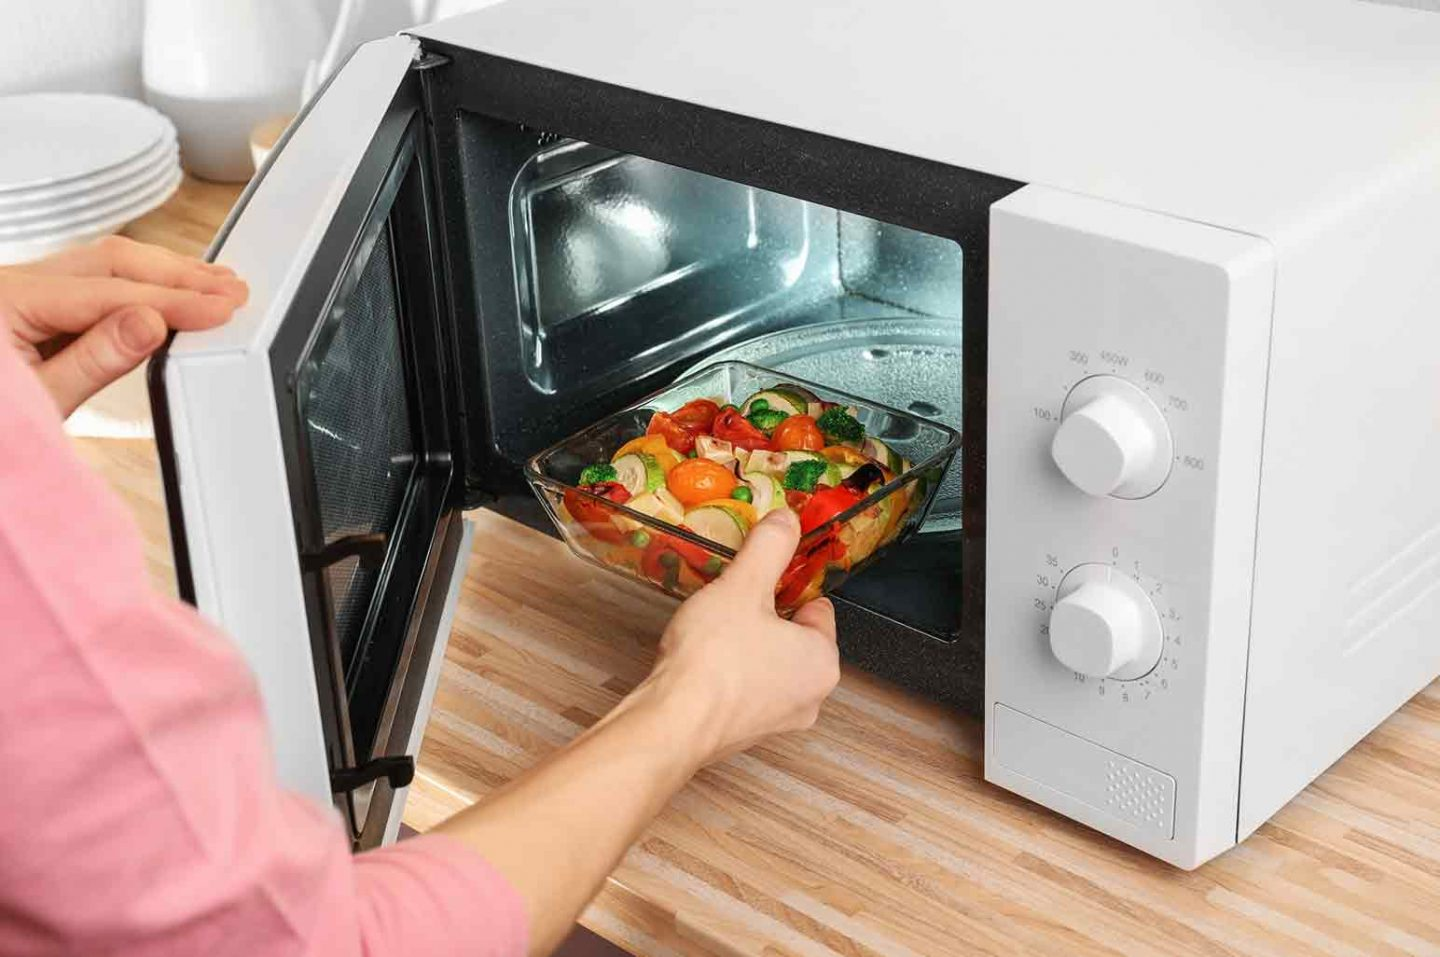 Products for Gourmet Microwave Cooking